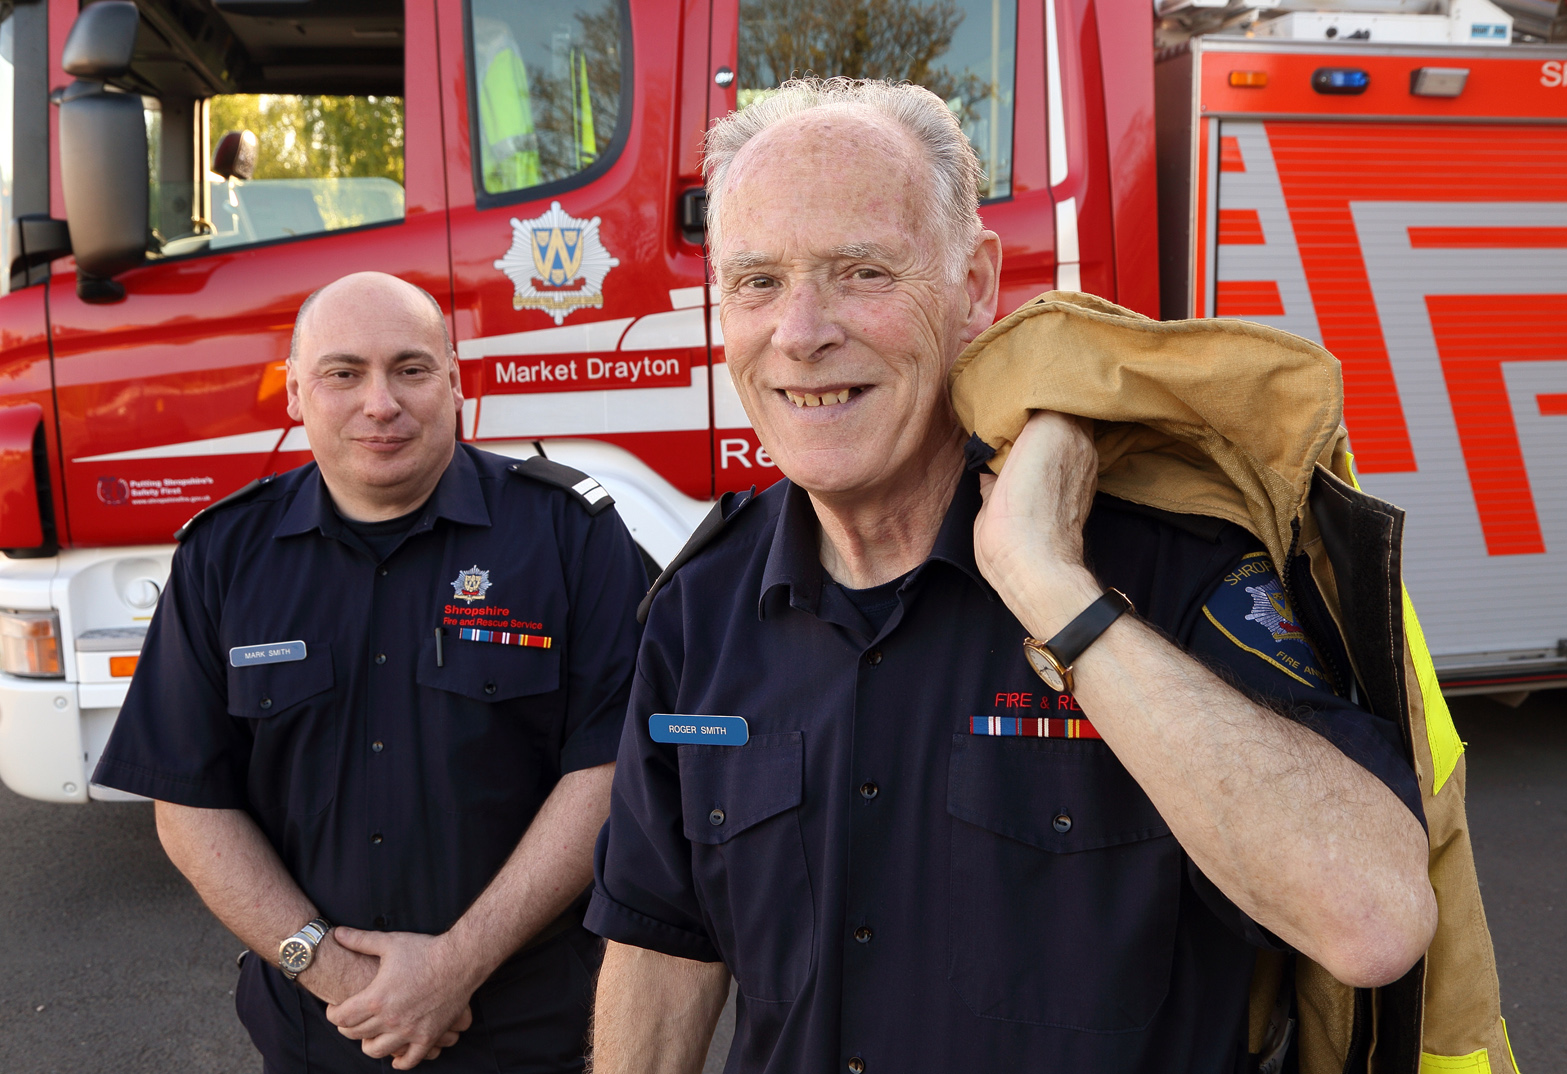 Roger Smith with son Mark, also a Shropshire firefighter